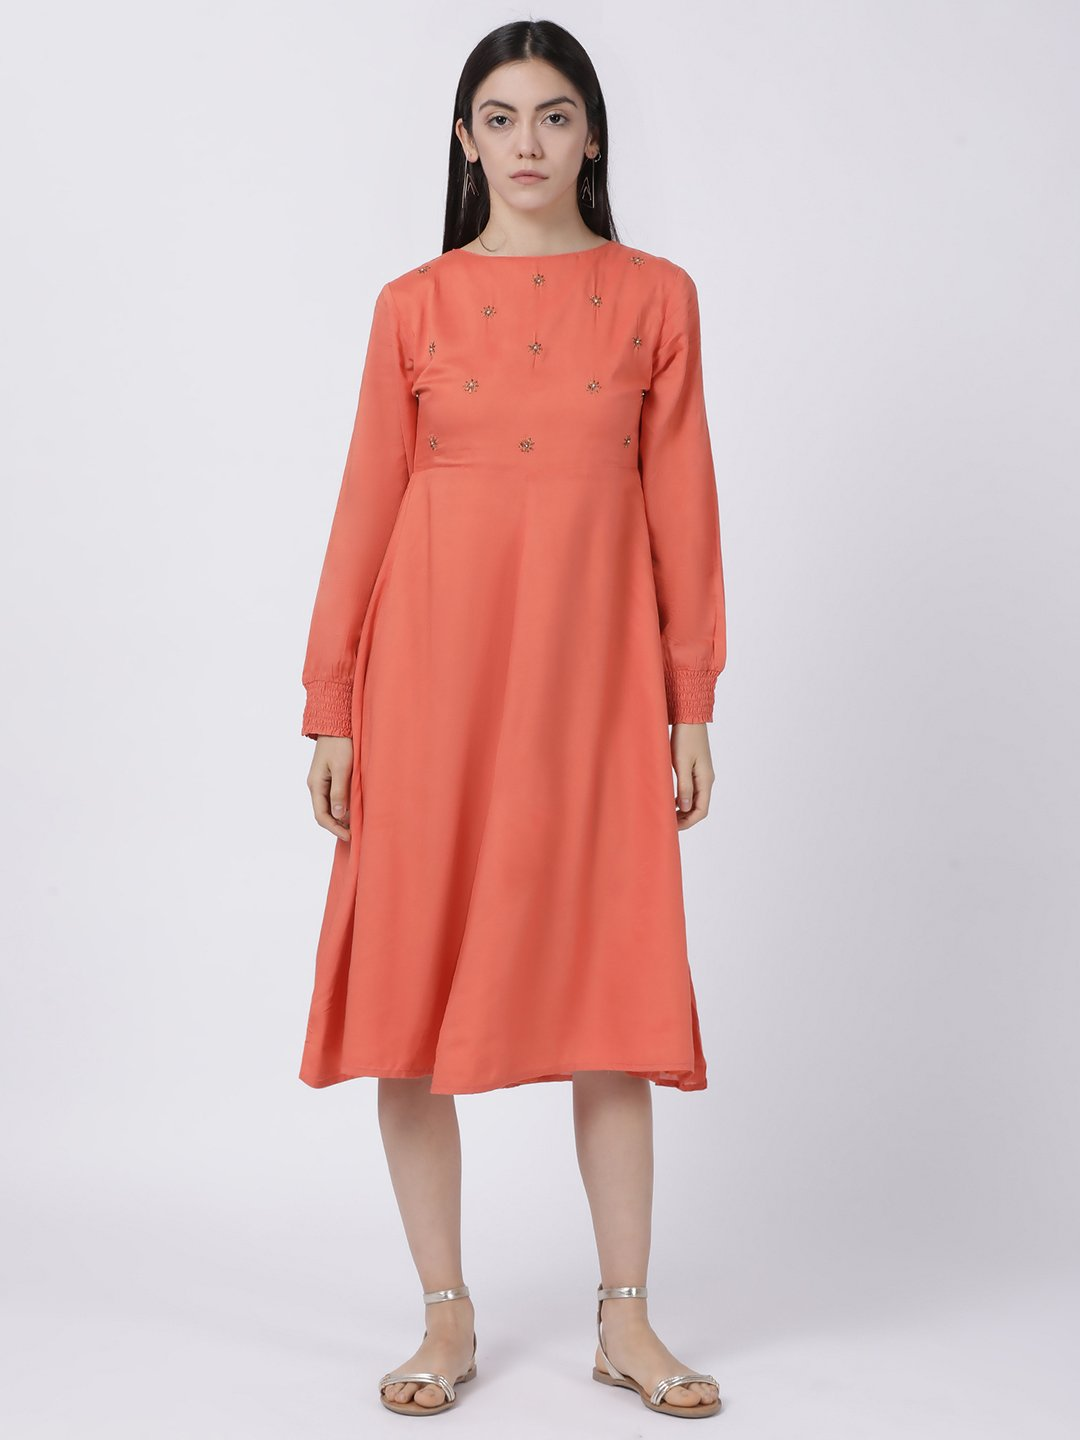 CORAL SMOCKED SLEEVE DRESS